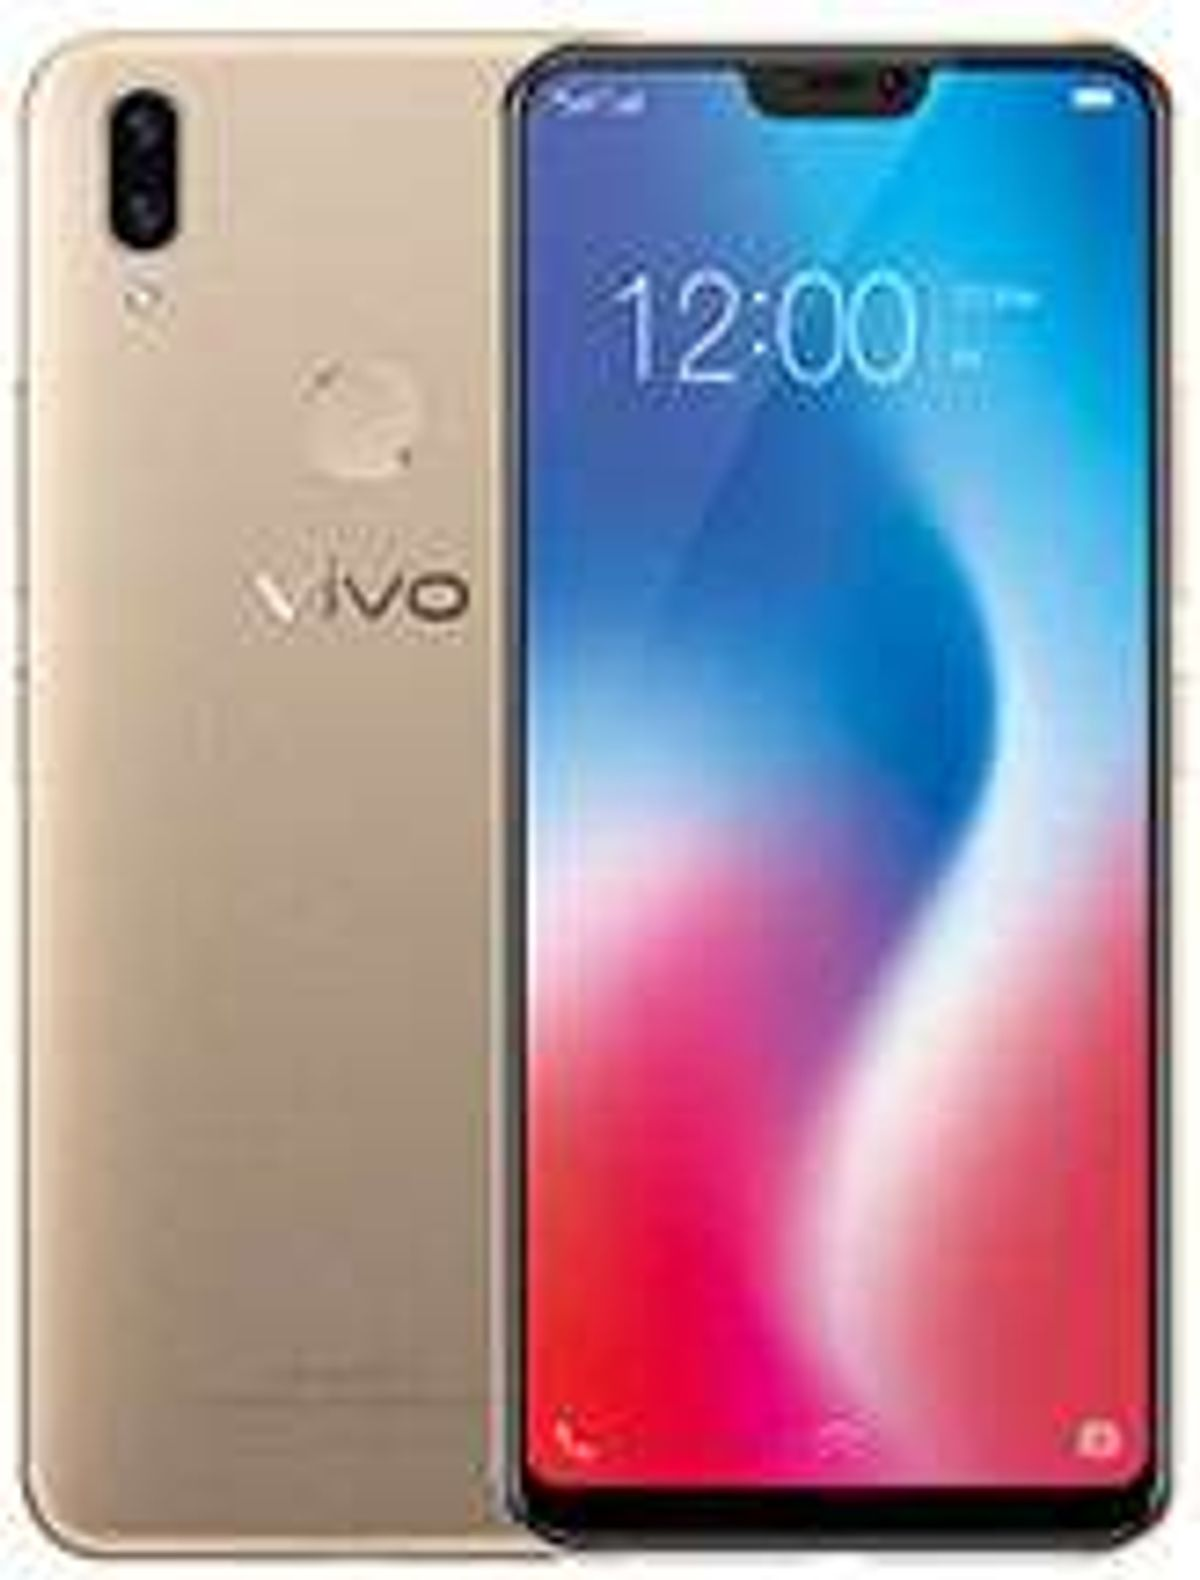 timeless design bd0bc a13ff Best Vivo 4G Phones Under 20000 - August 2019 in India | Digit.in